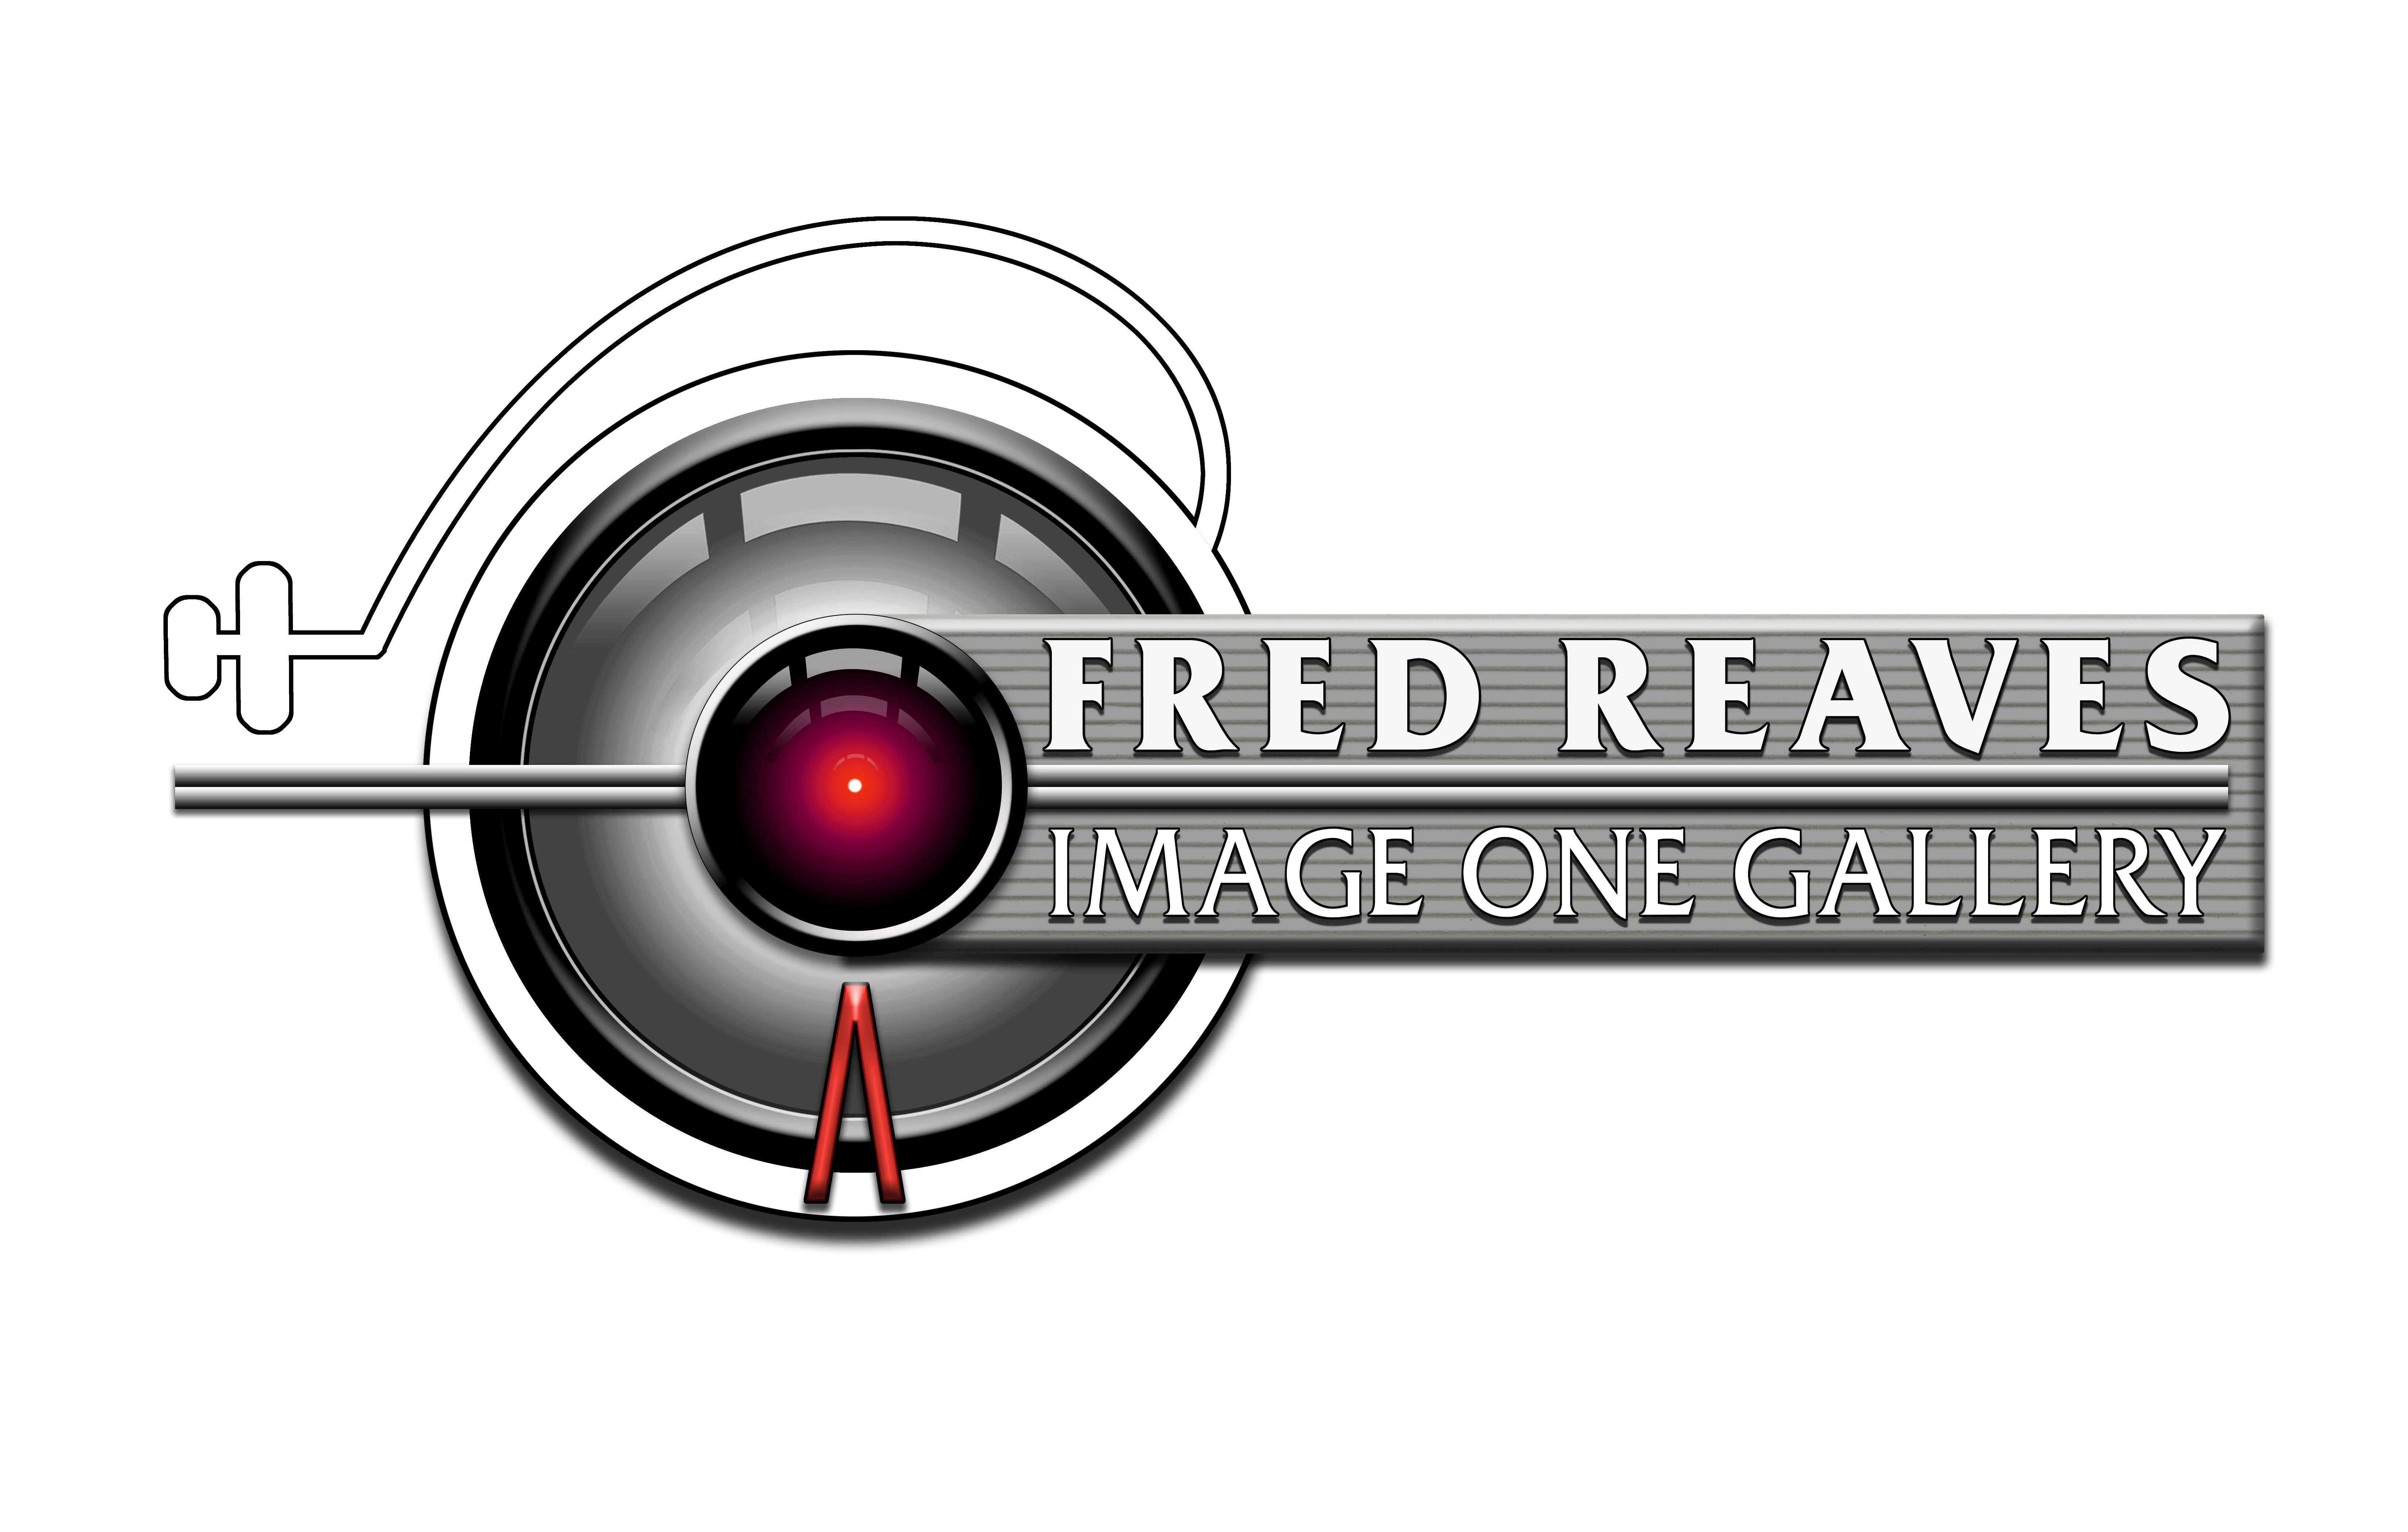 FRED REAVES  IMAGE ONE GALLERY